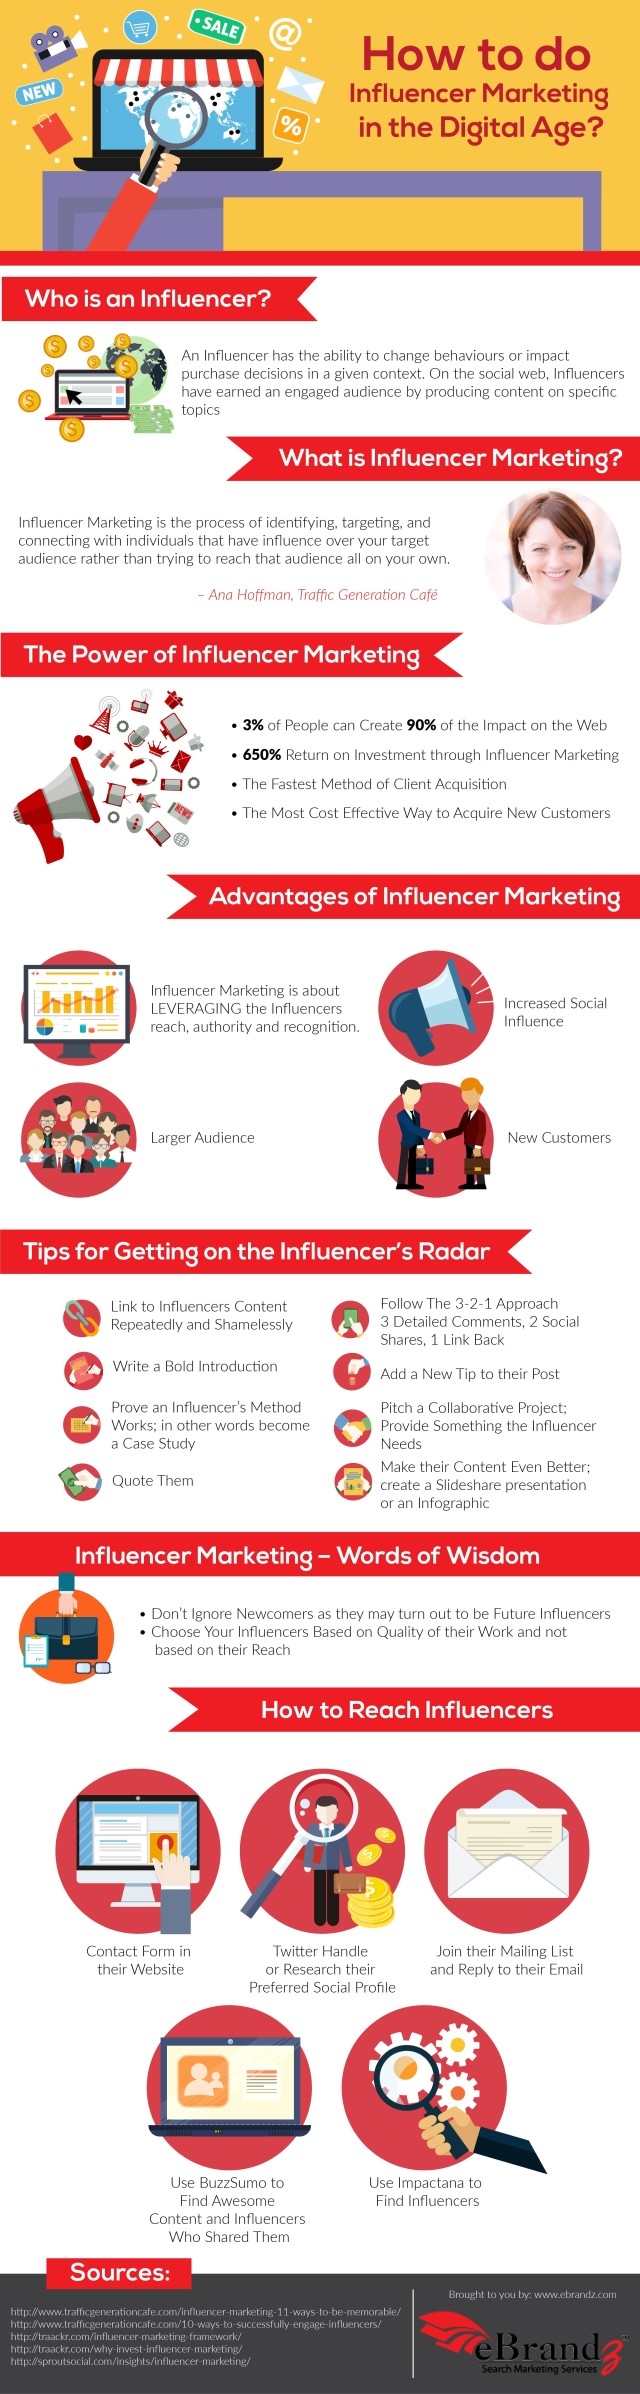 influnce-infographic-image